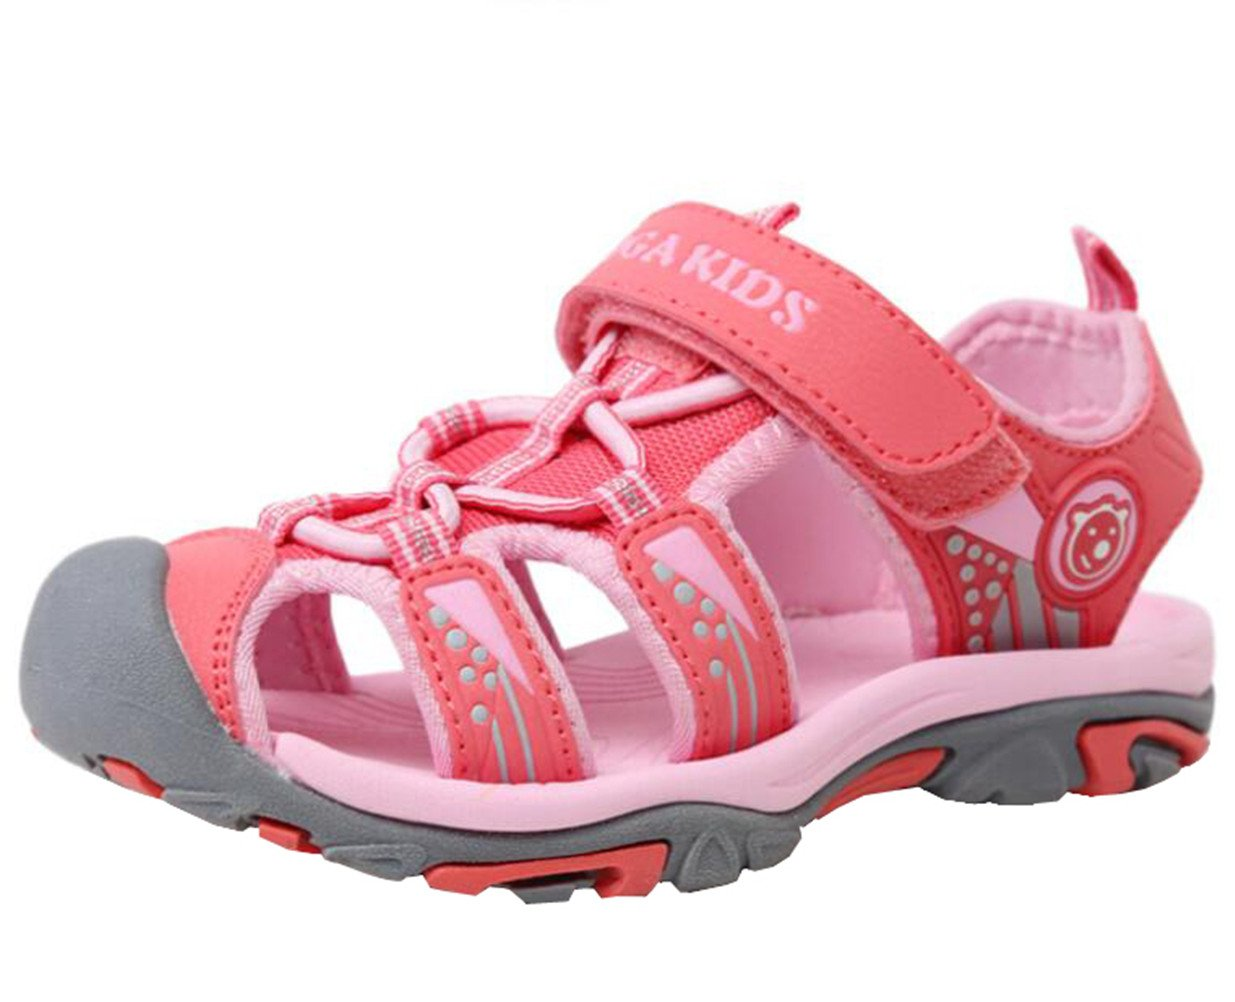 DADAWEN Boy's Girl's Outdoor Athletic Strap Breathable Closed-Toe Water Sandals (Toddler/Little Kid/Big Kid) Pink US Size 1.5 M Little Kid